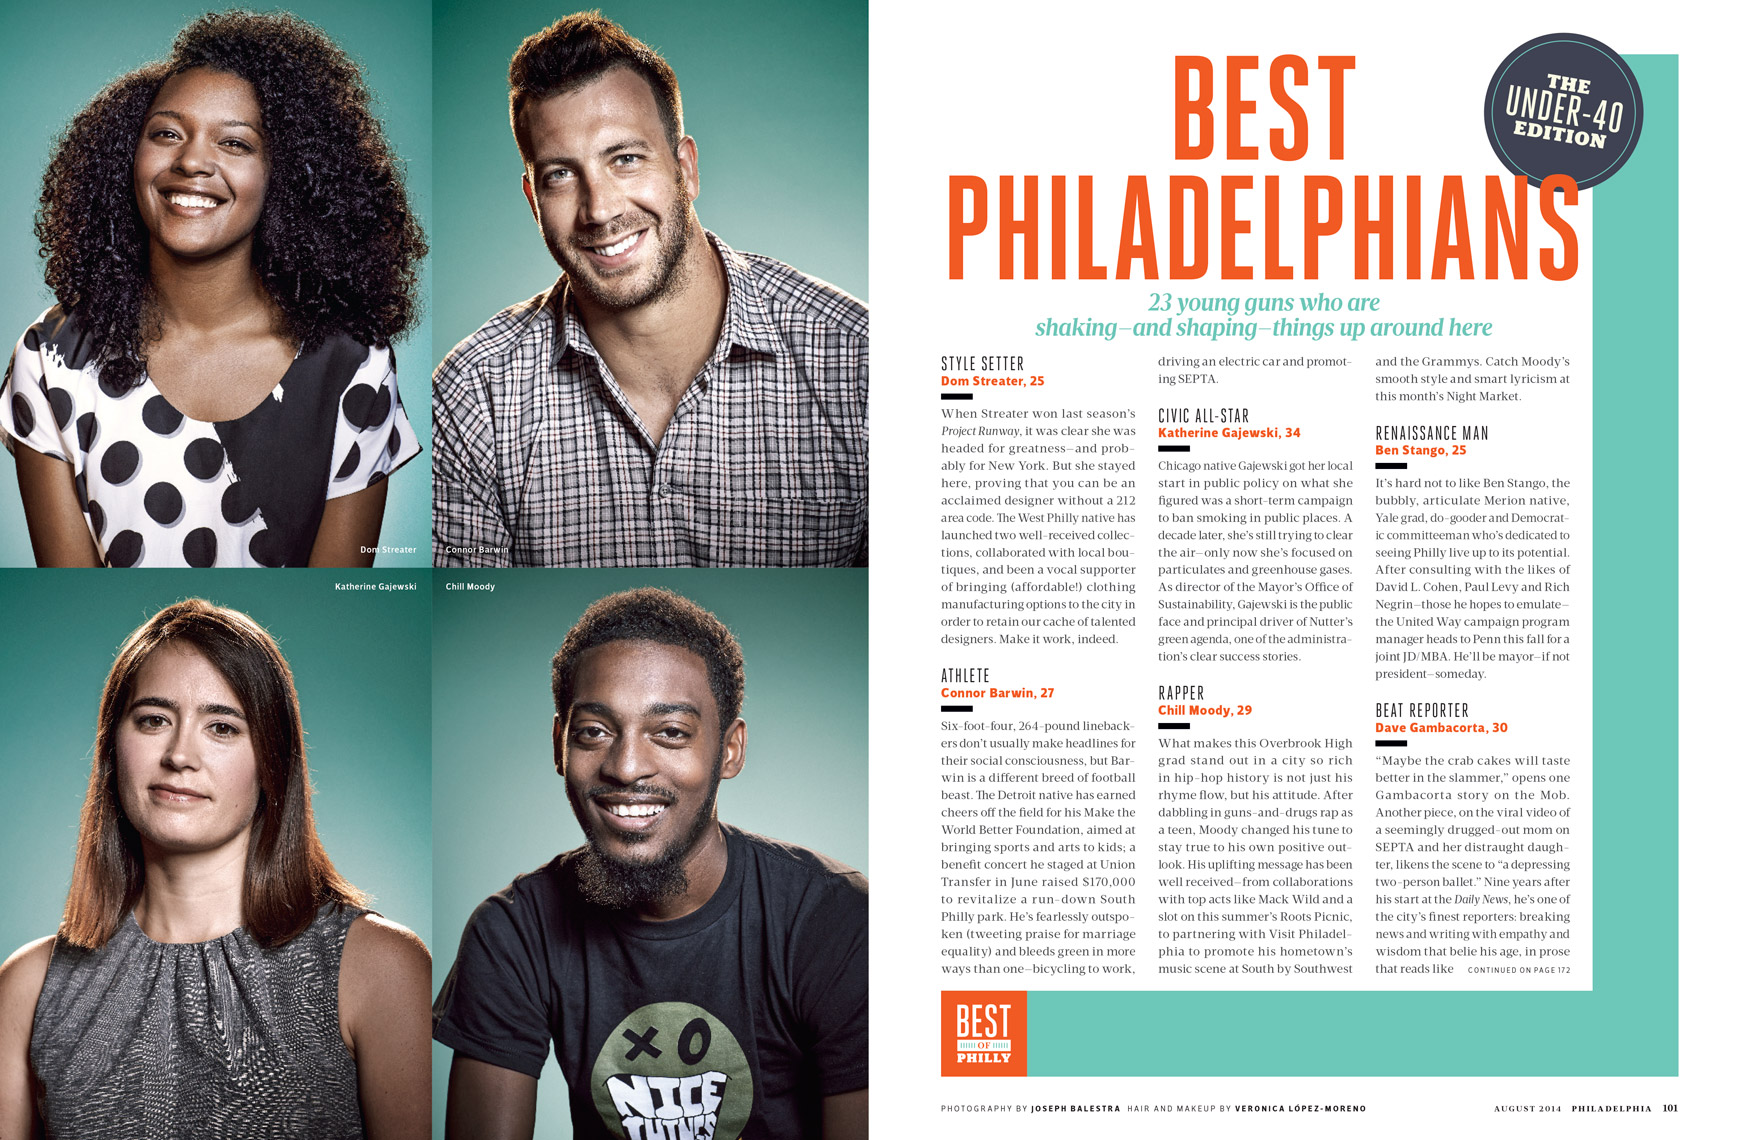 Philadelphia-Magazine---BEST-PHILADELPHIANS-Feature---August-2014---photographer-Joseph-Balestra.tif